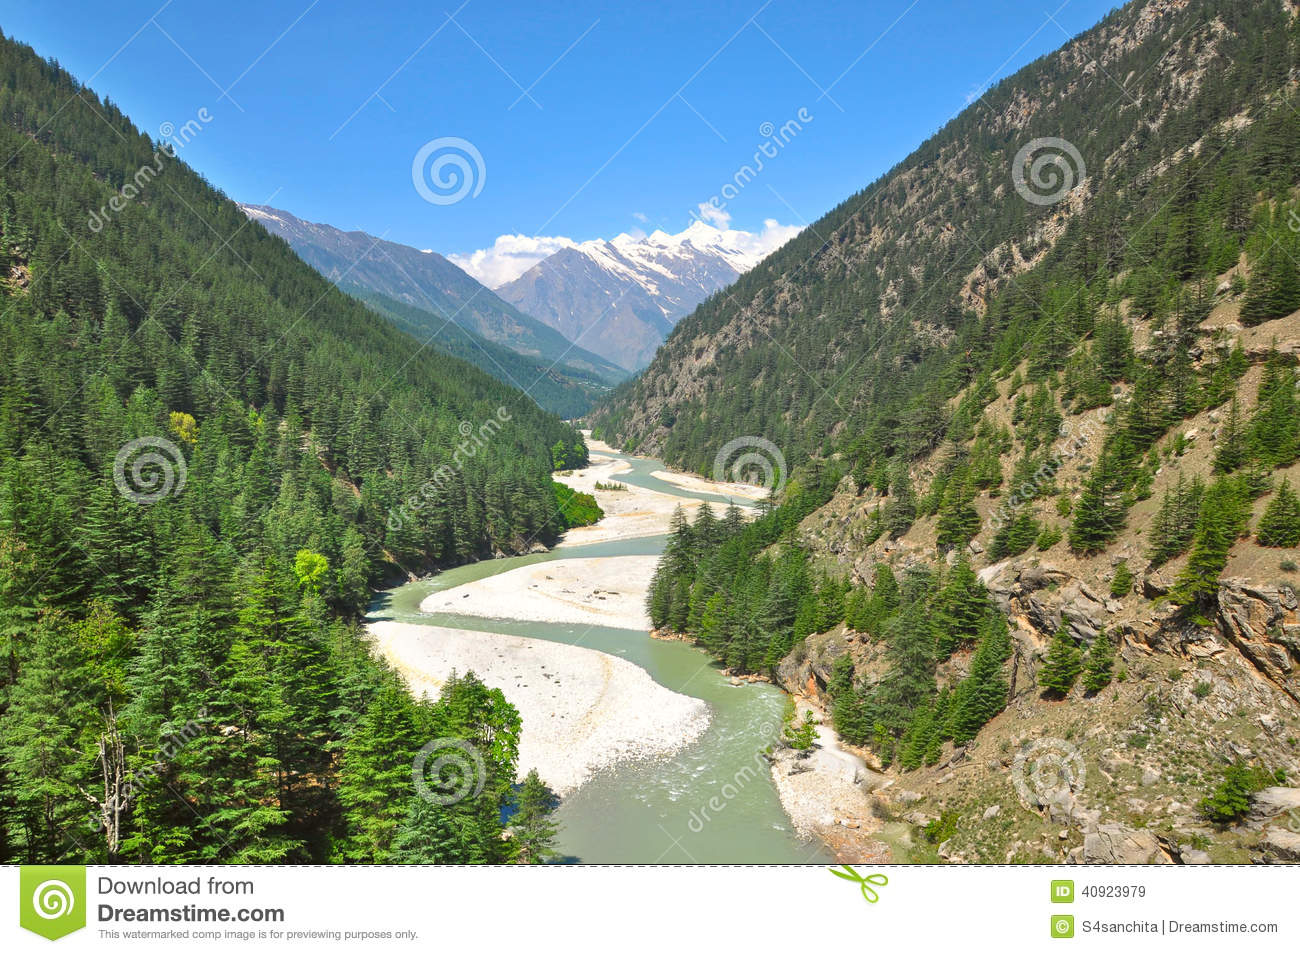 Ganga river clipart image black and white library Meandering Holy Ganga River Stock Photo - Image: 40923979 image black and white library